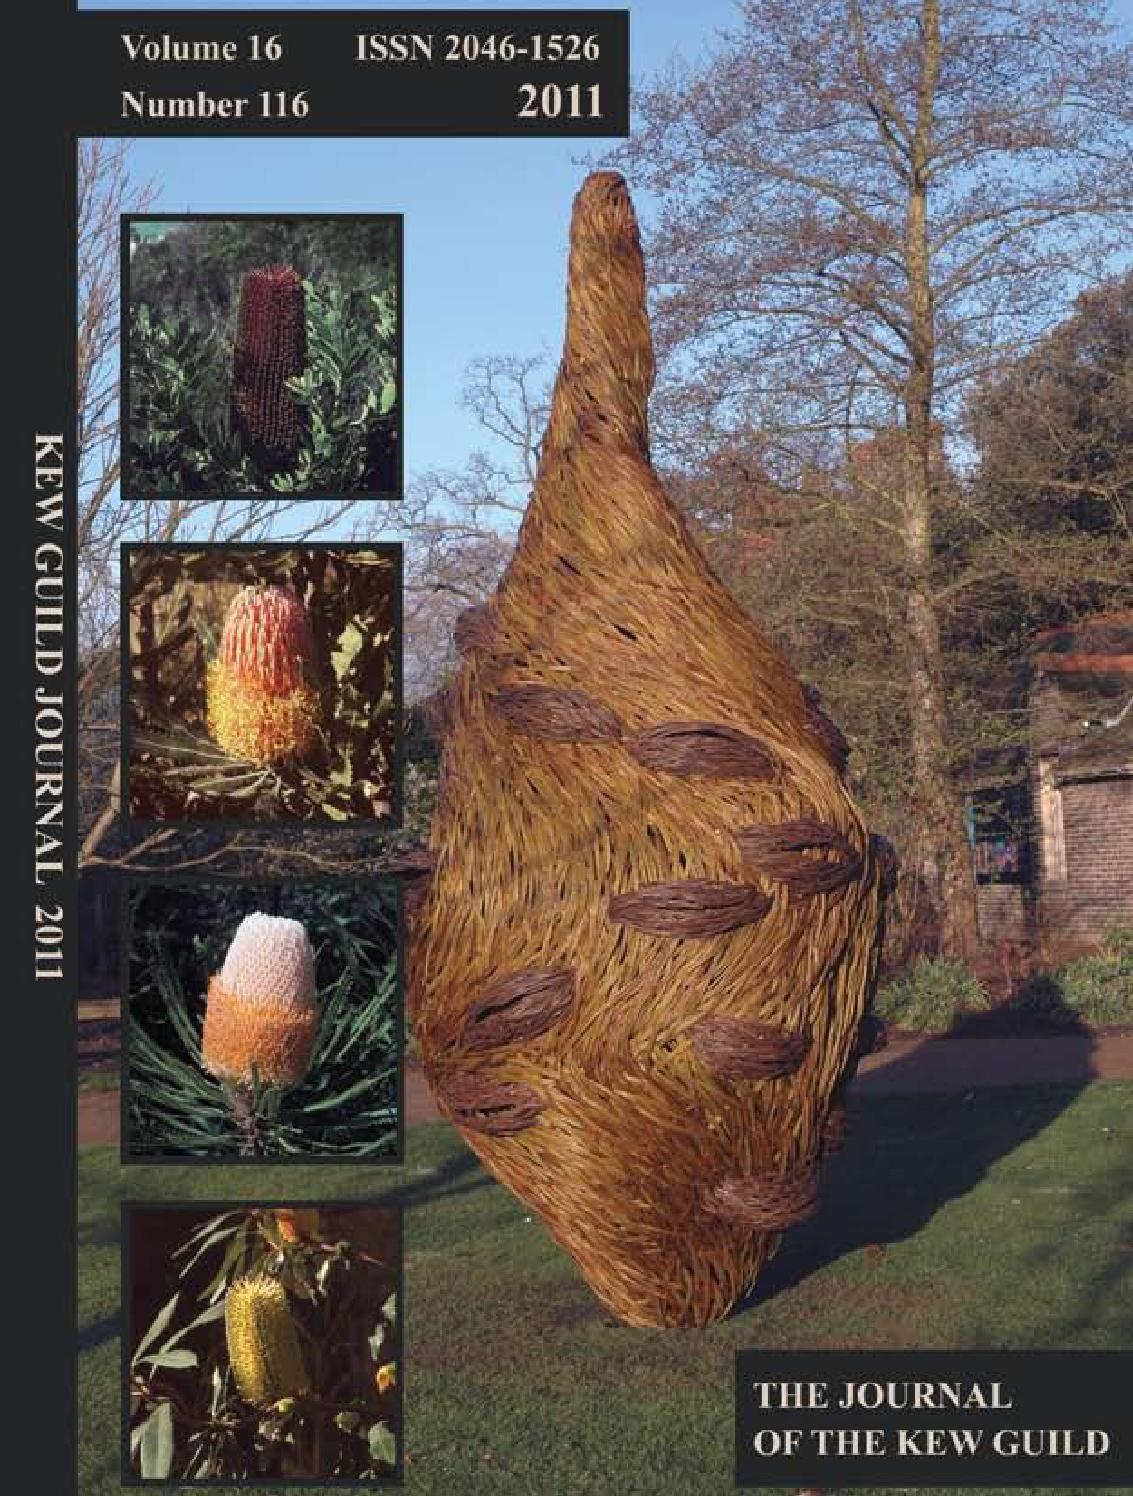 The Journal of the Kew Guild - Events of 2011 by Kew Guild Journal ...